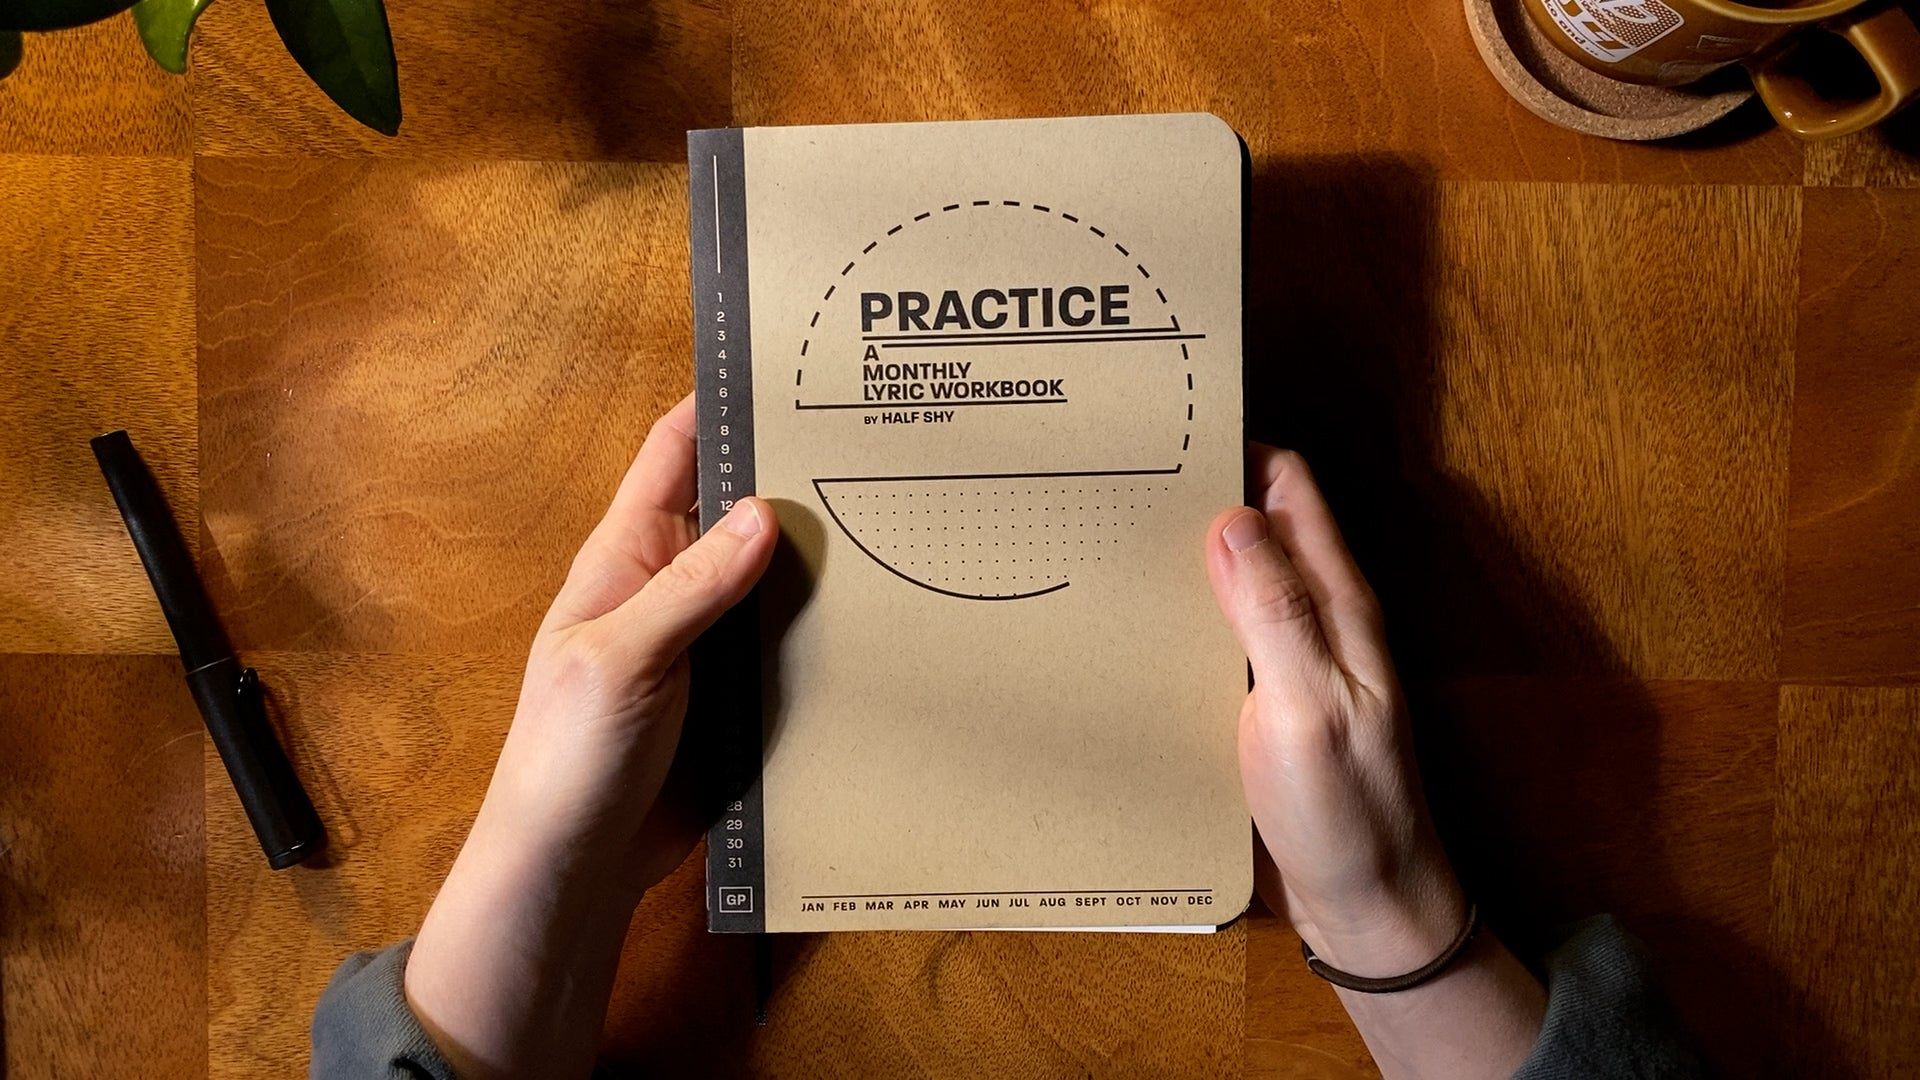 Practice Lyric Workbook cover held above a desk